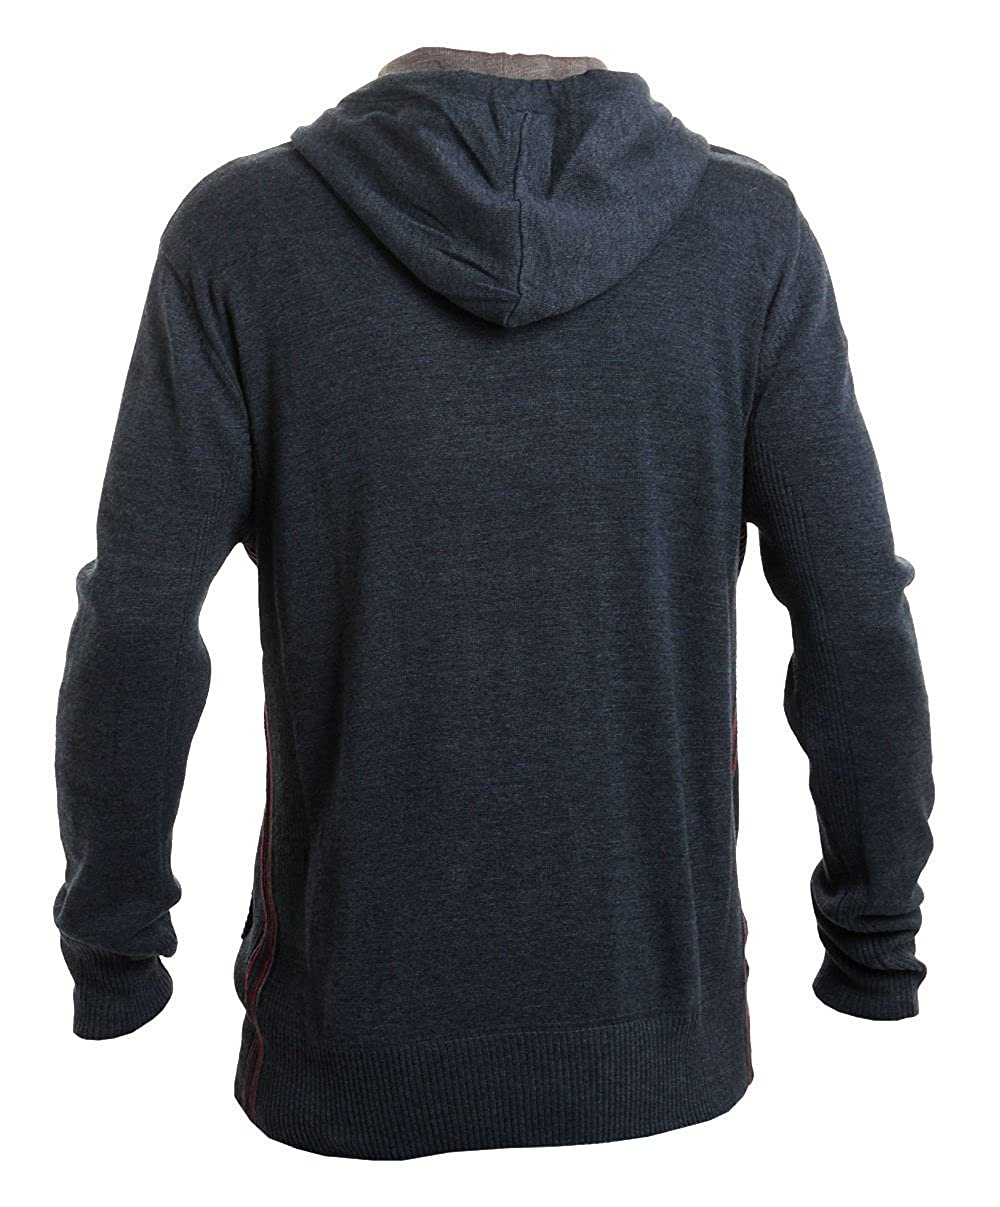 Mens Jumper Ringspun Knitted Sweater Pullover Top Hooded Long Sleeved Winter New